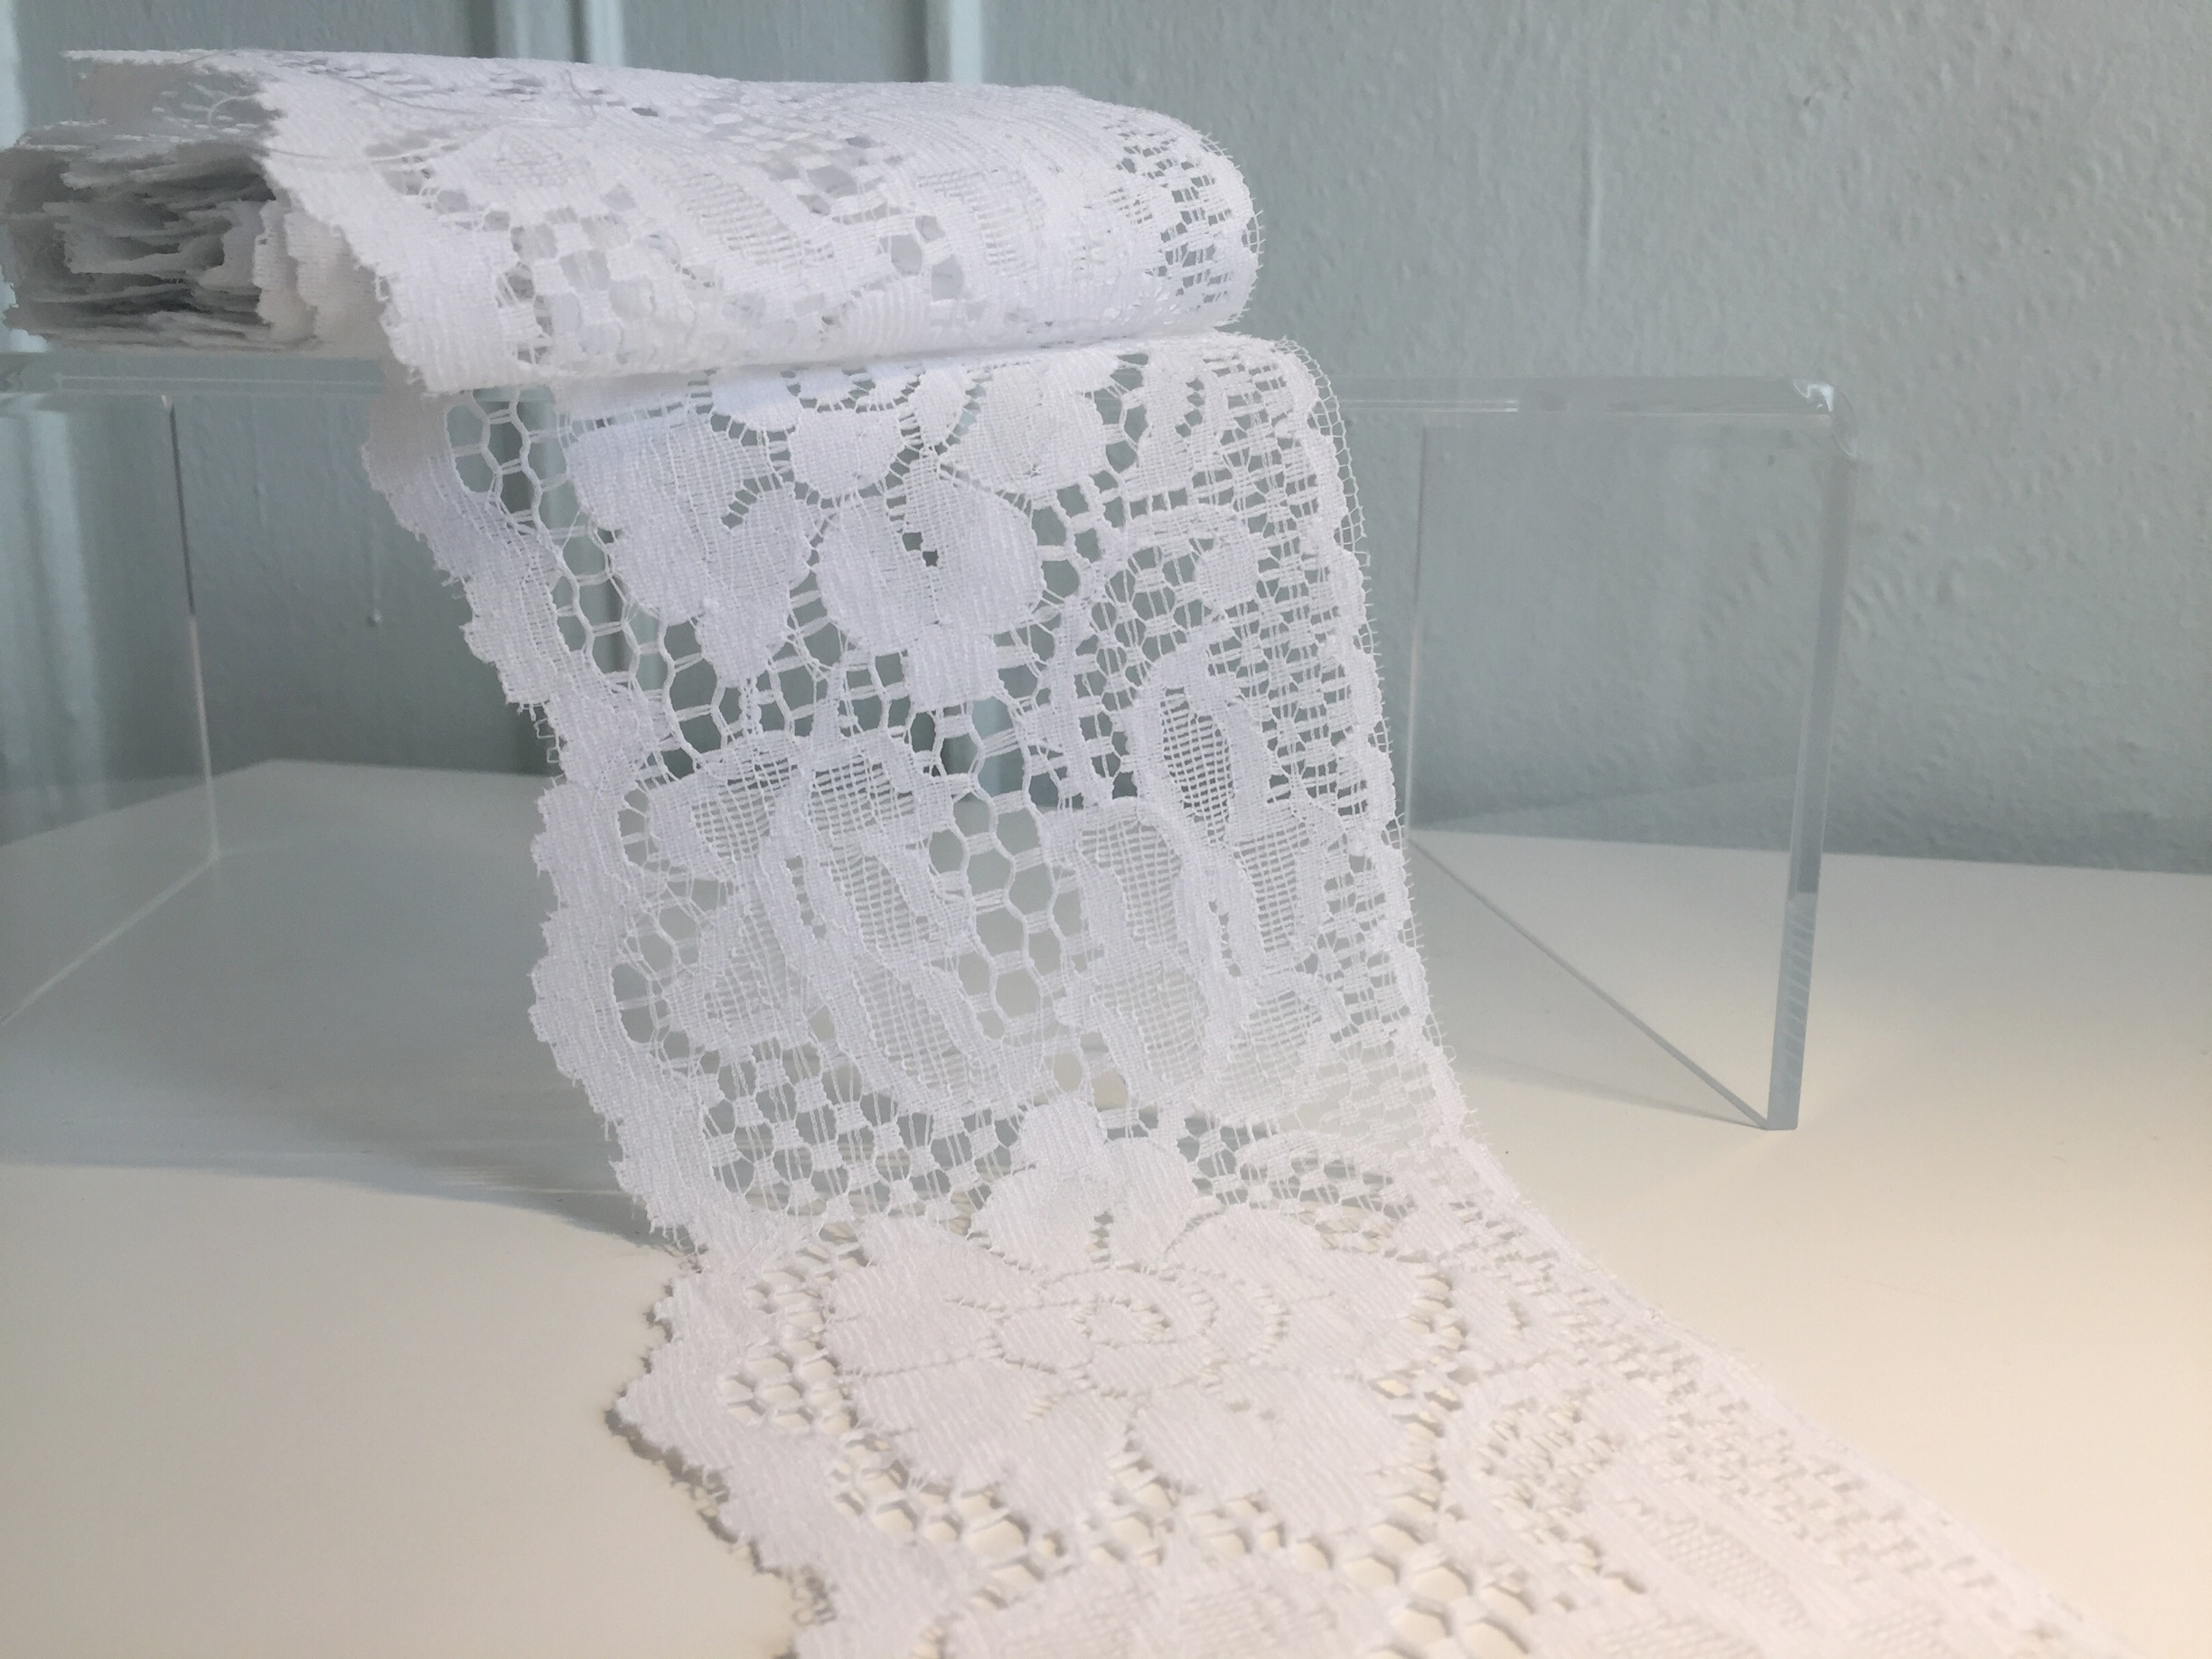 Leaver's lace: This is lace made on the Leaver's machine, developed in the early/mid 1800s from an adaptation of a net making machine and the jacquard weaving apparatus, which makes lace complete with the pattern, net, and outline, all at once. This machine-made lace incorporates some of the shading details found in finder handmade chantilly lace, without requiring a netting ground. It's generally flatter, and makes for a sturdy lace option, even if made in a more delicate design.